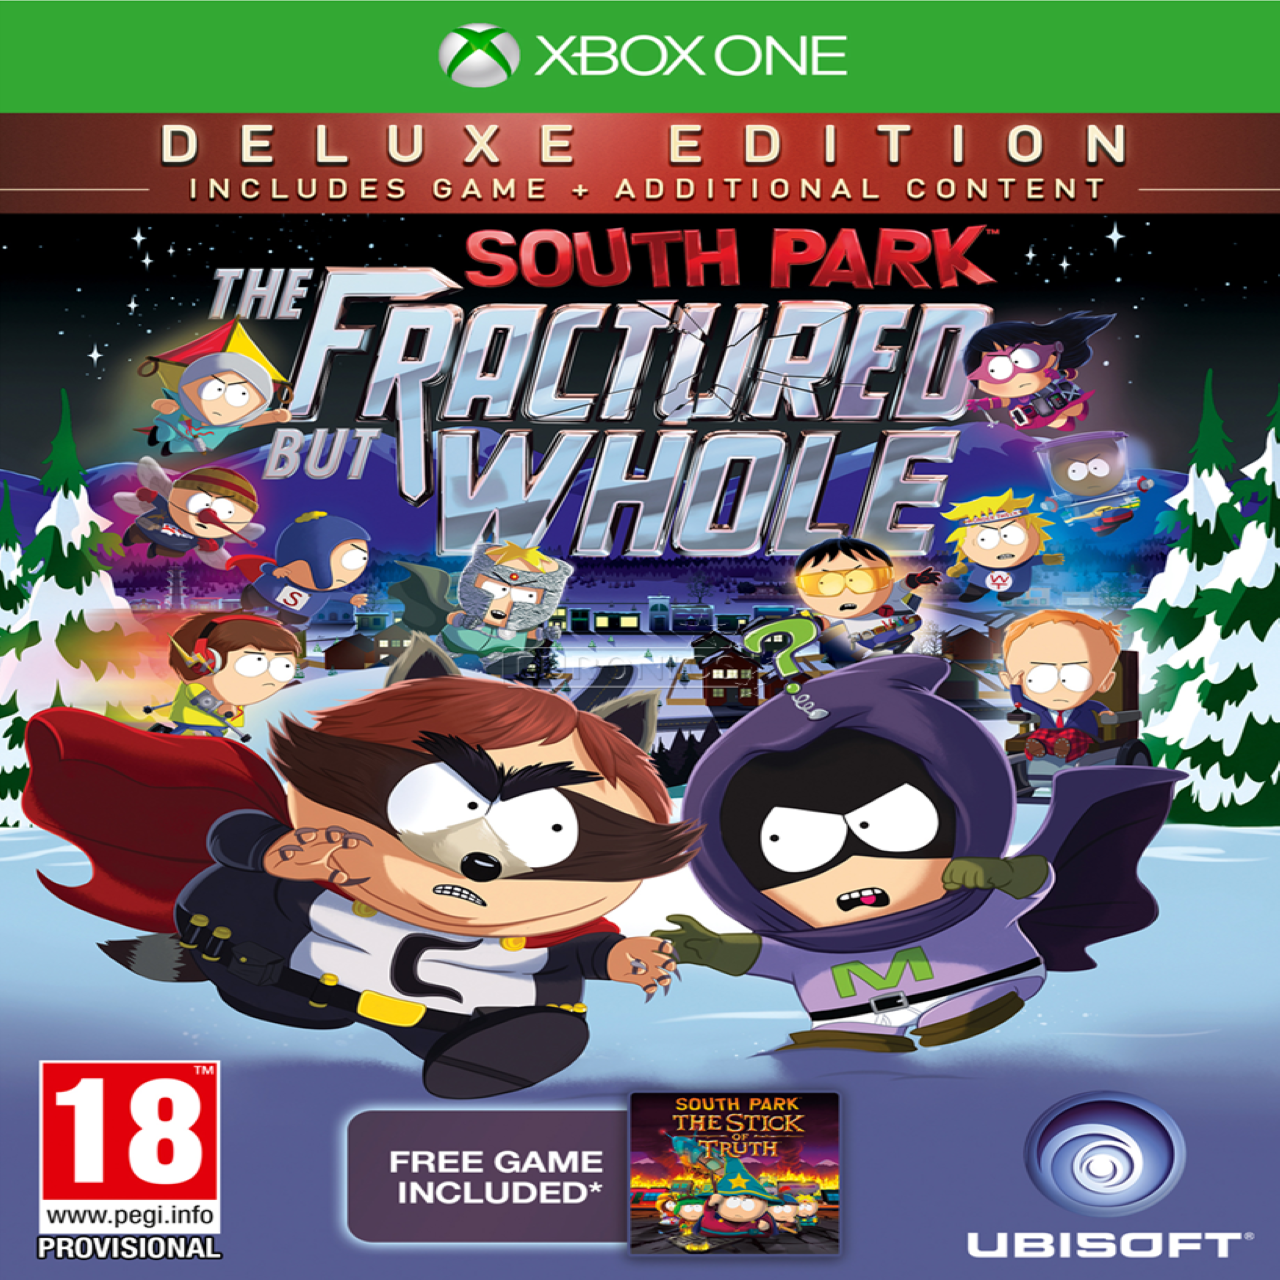 South Park The Fractured But Whole Deluxe Edition SUB Xbox One